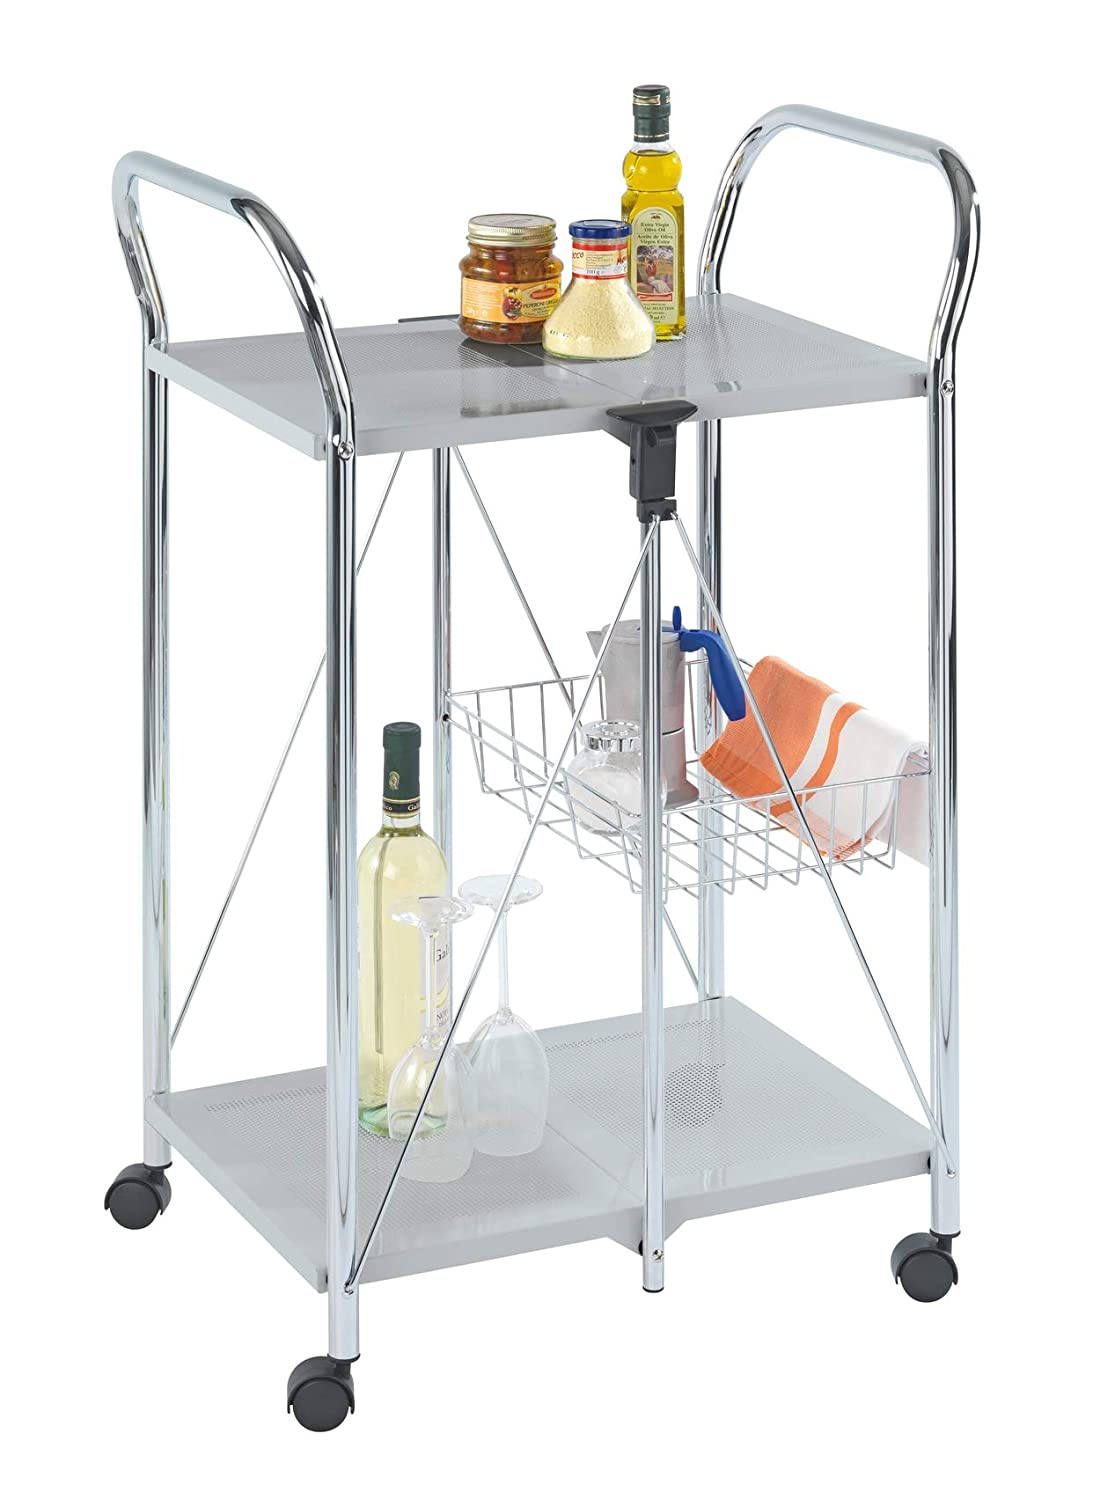 WENKO Kitchen and utility trolley Sunny silver, 60 x 90 x 44 Cm- foldable, Powder-coated metal, 22.2 x 35.6 x 17.3 inch, Silver/Chrome